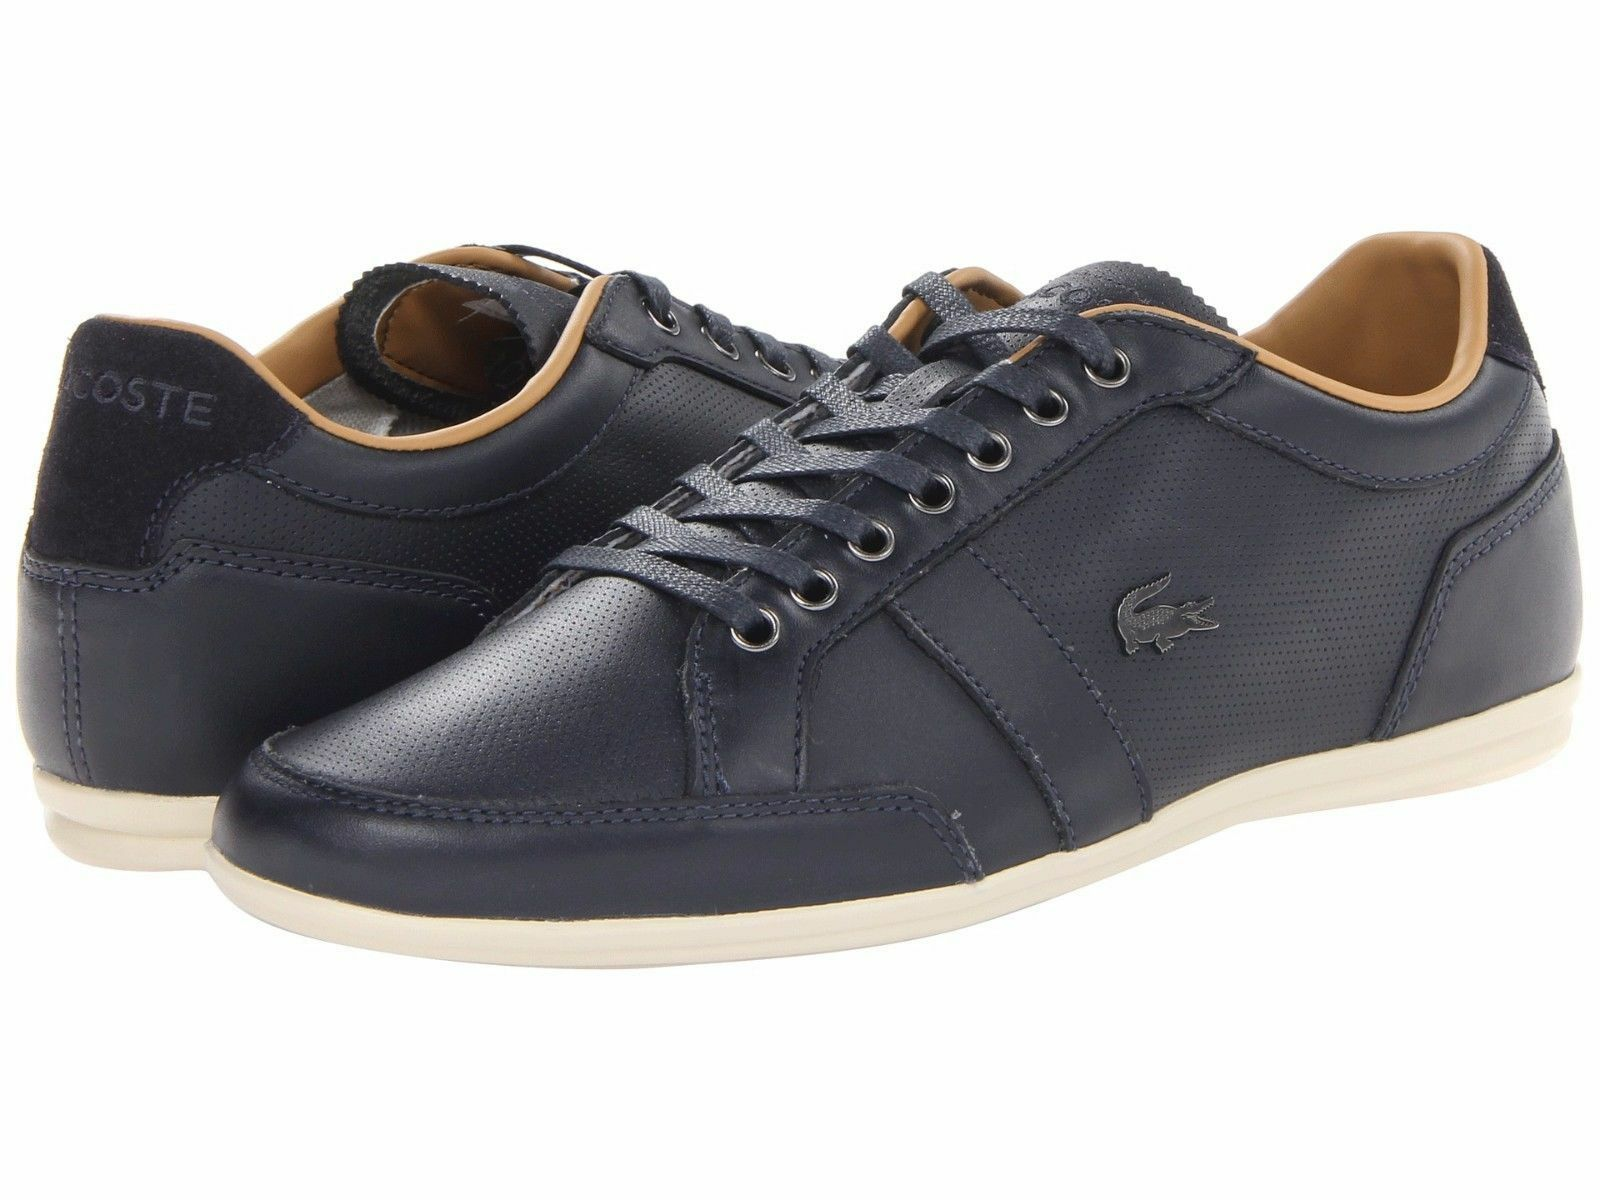 b216a5c45 Size 12 LACOSTE Leather Mens Sneaker Shoe! and similar items. S l1600